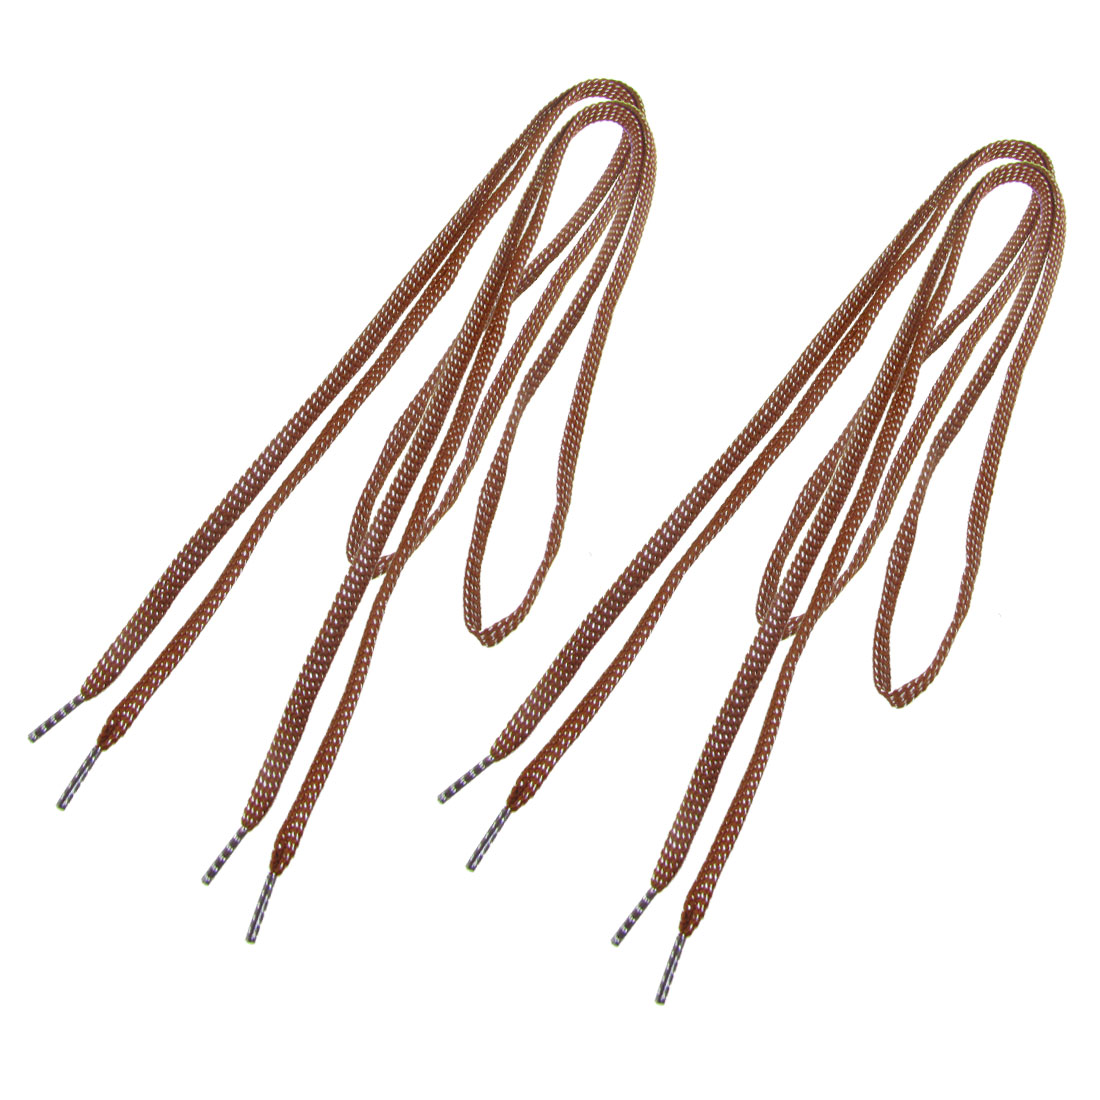 "2 Pair 45.6"" Long Brown Metal Thread Decor Round Plastic Tip Nylon Shoelaces for Sneaker"